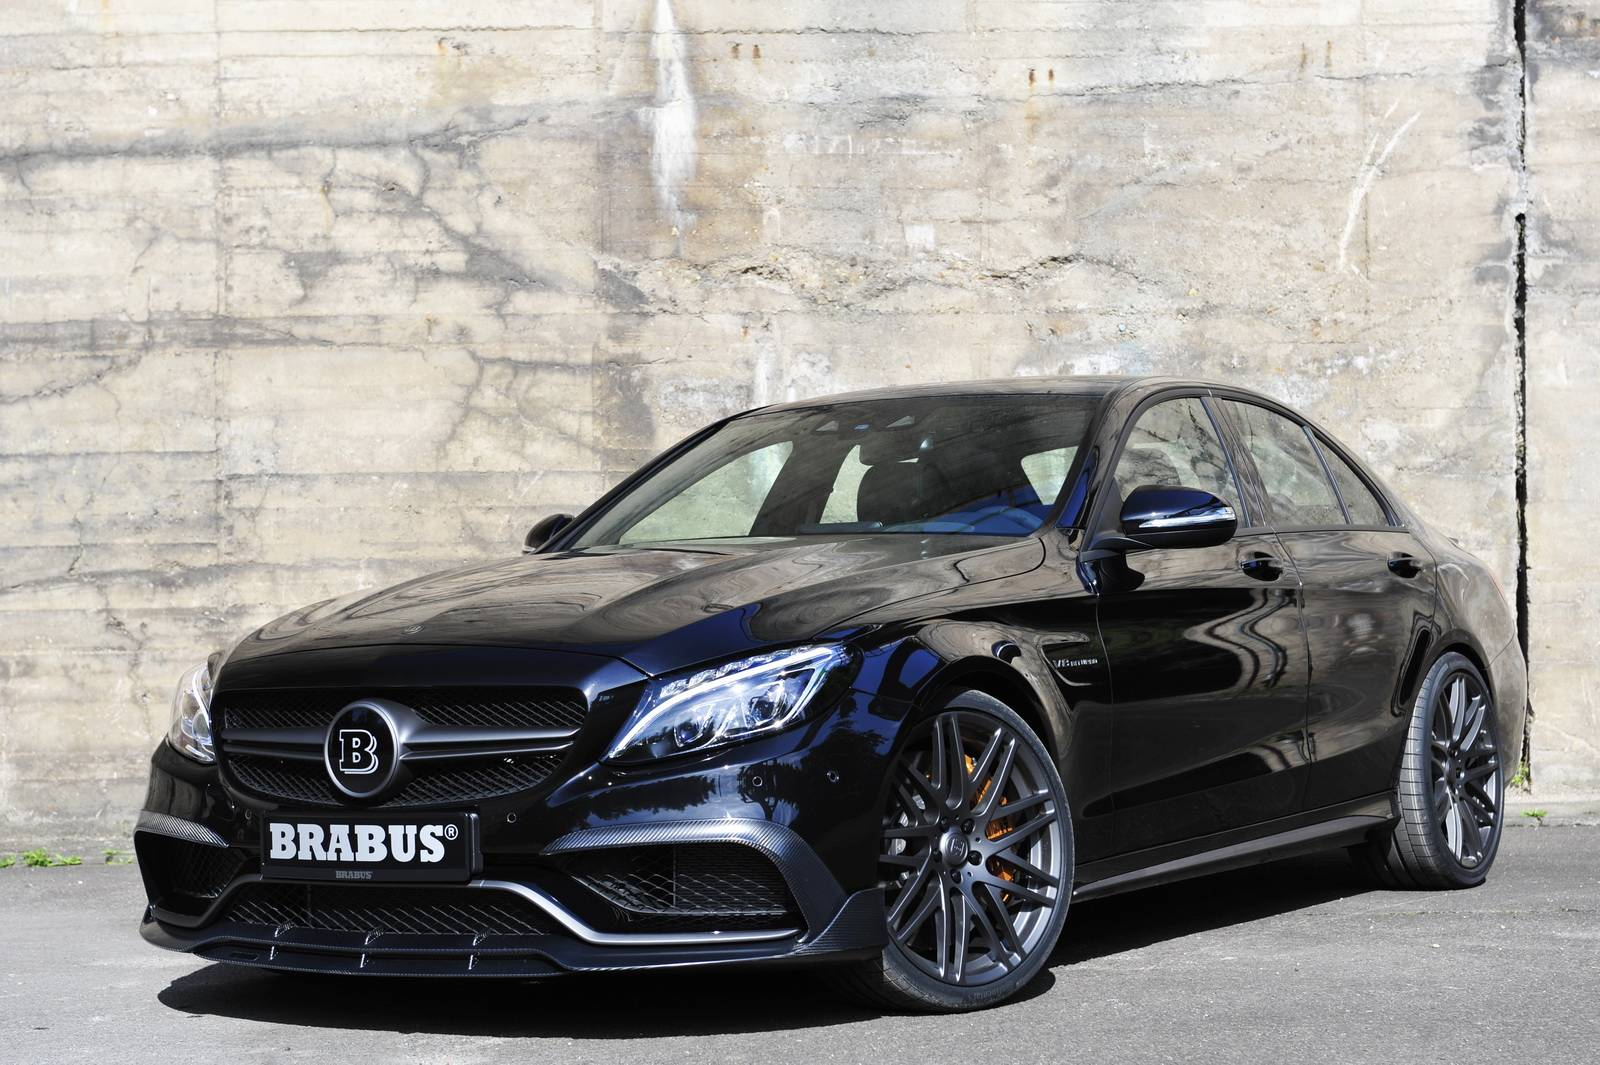 Mercedes-benz brabus photo - 6